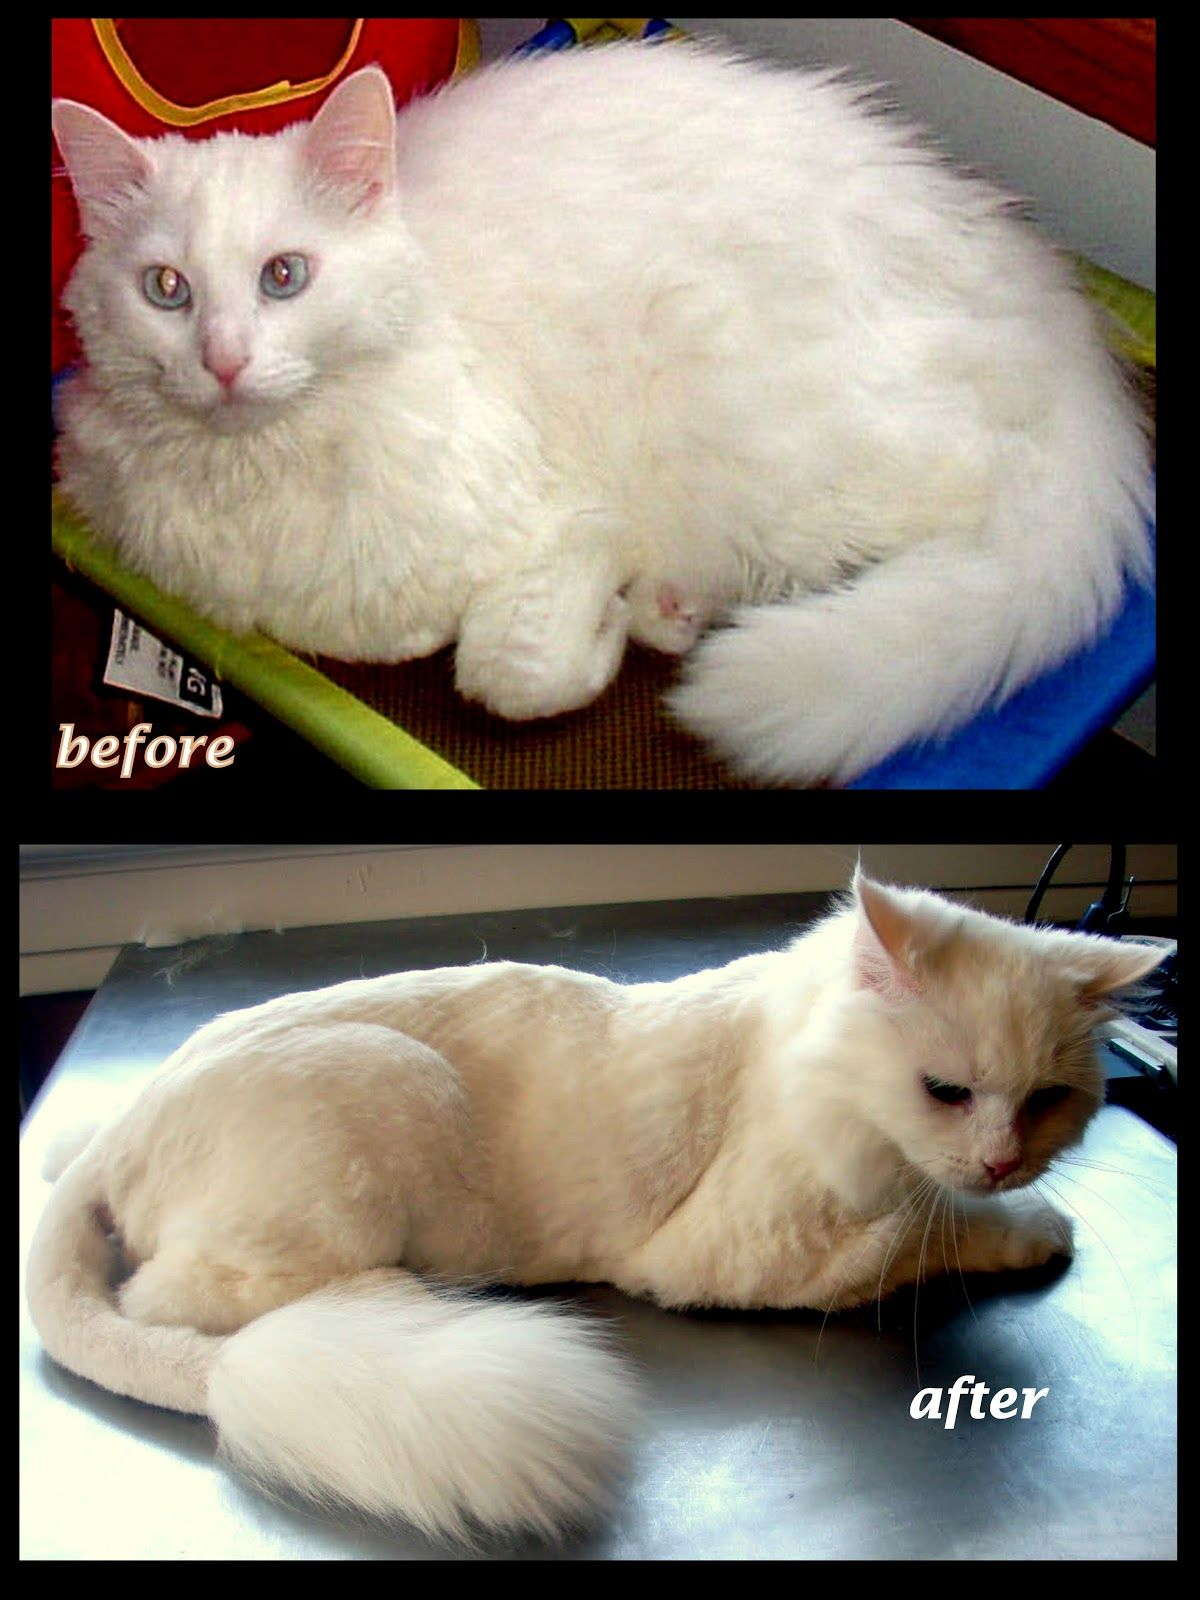 Cat Grooming Before and After Click image to read more